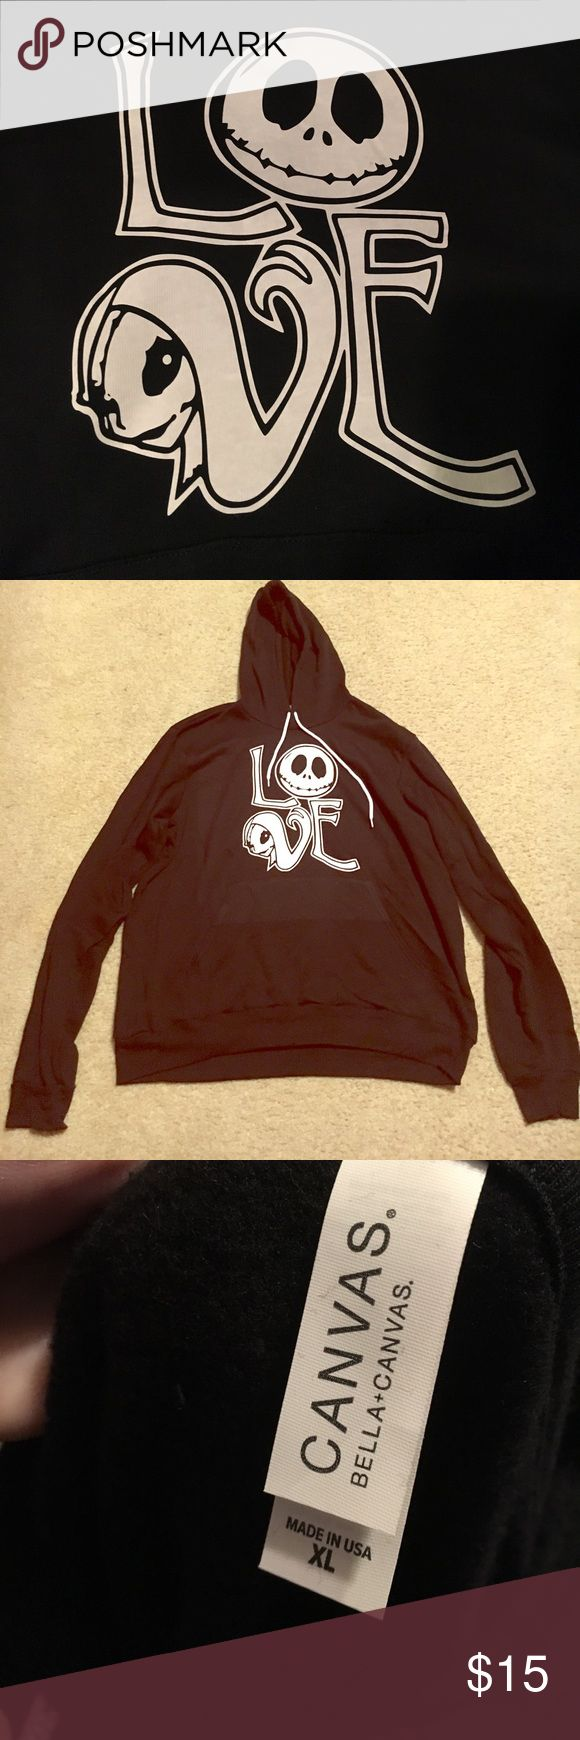 Nightmare before Christmas hoodie XL Nwot Nightmare before christmas hoodie size XL . Laying flat length 27 in x 24 1/2 in. Unofficial product. Never worn. From a smoke free home :) Other